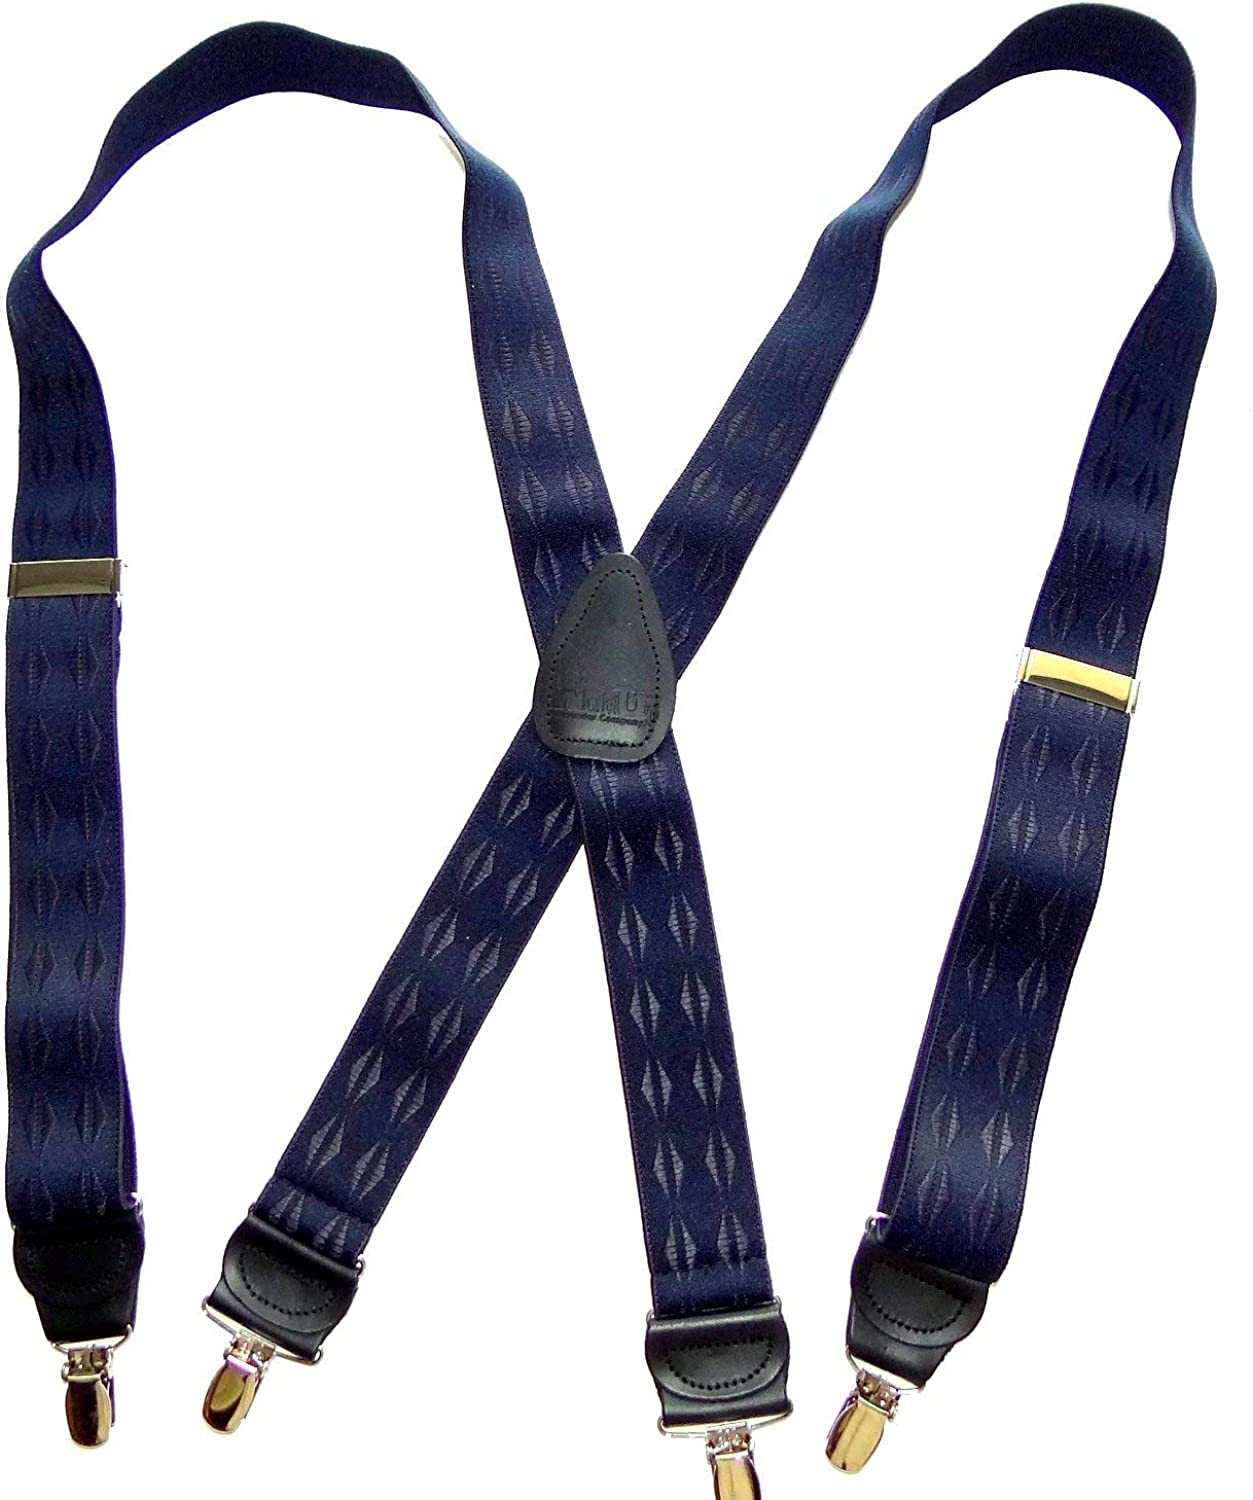 Hold-Ups Blue Pattern Jacquard Suspenders X-back and Gold No-slip Clips